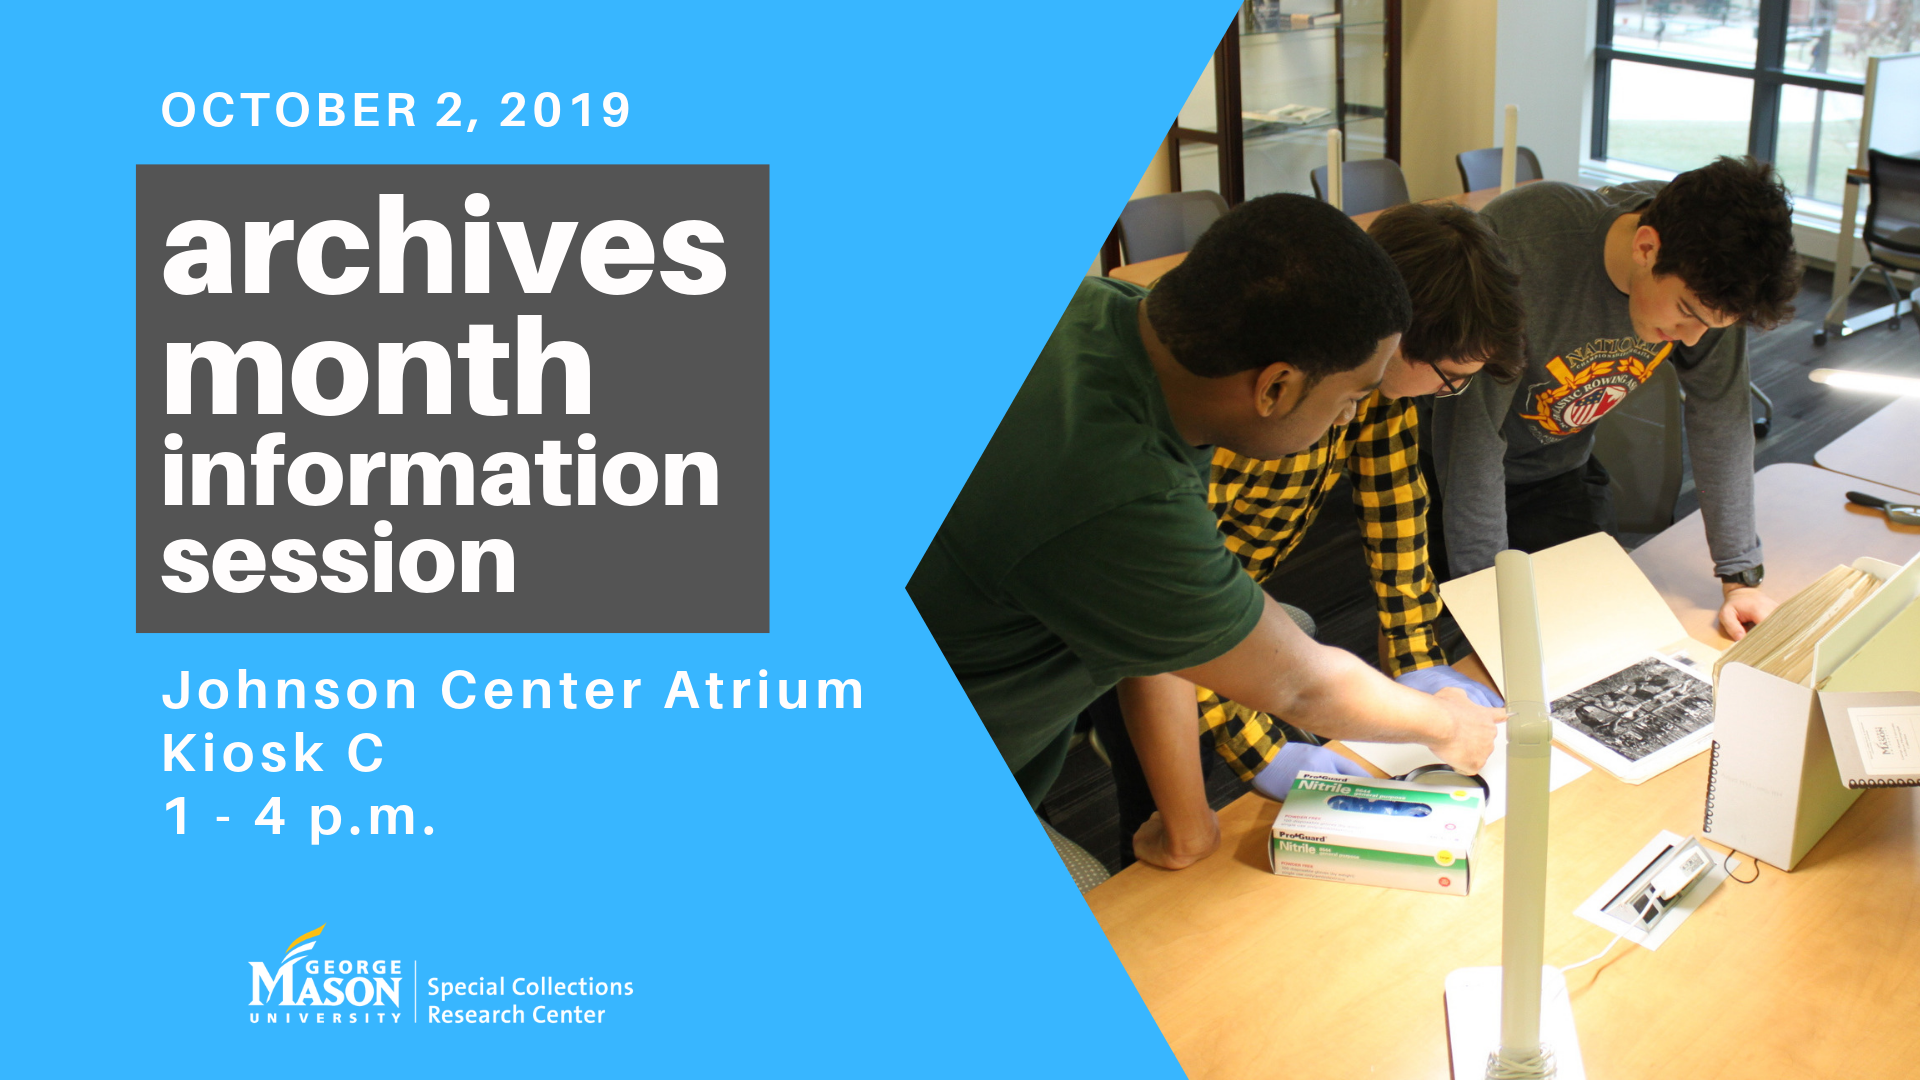 Archives Month Information Session